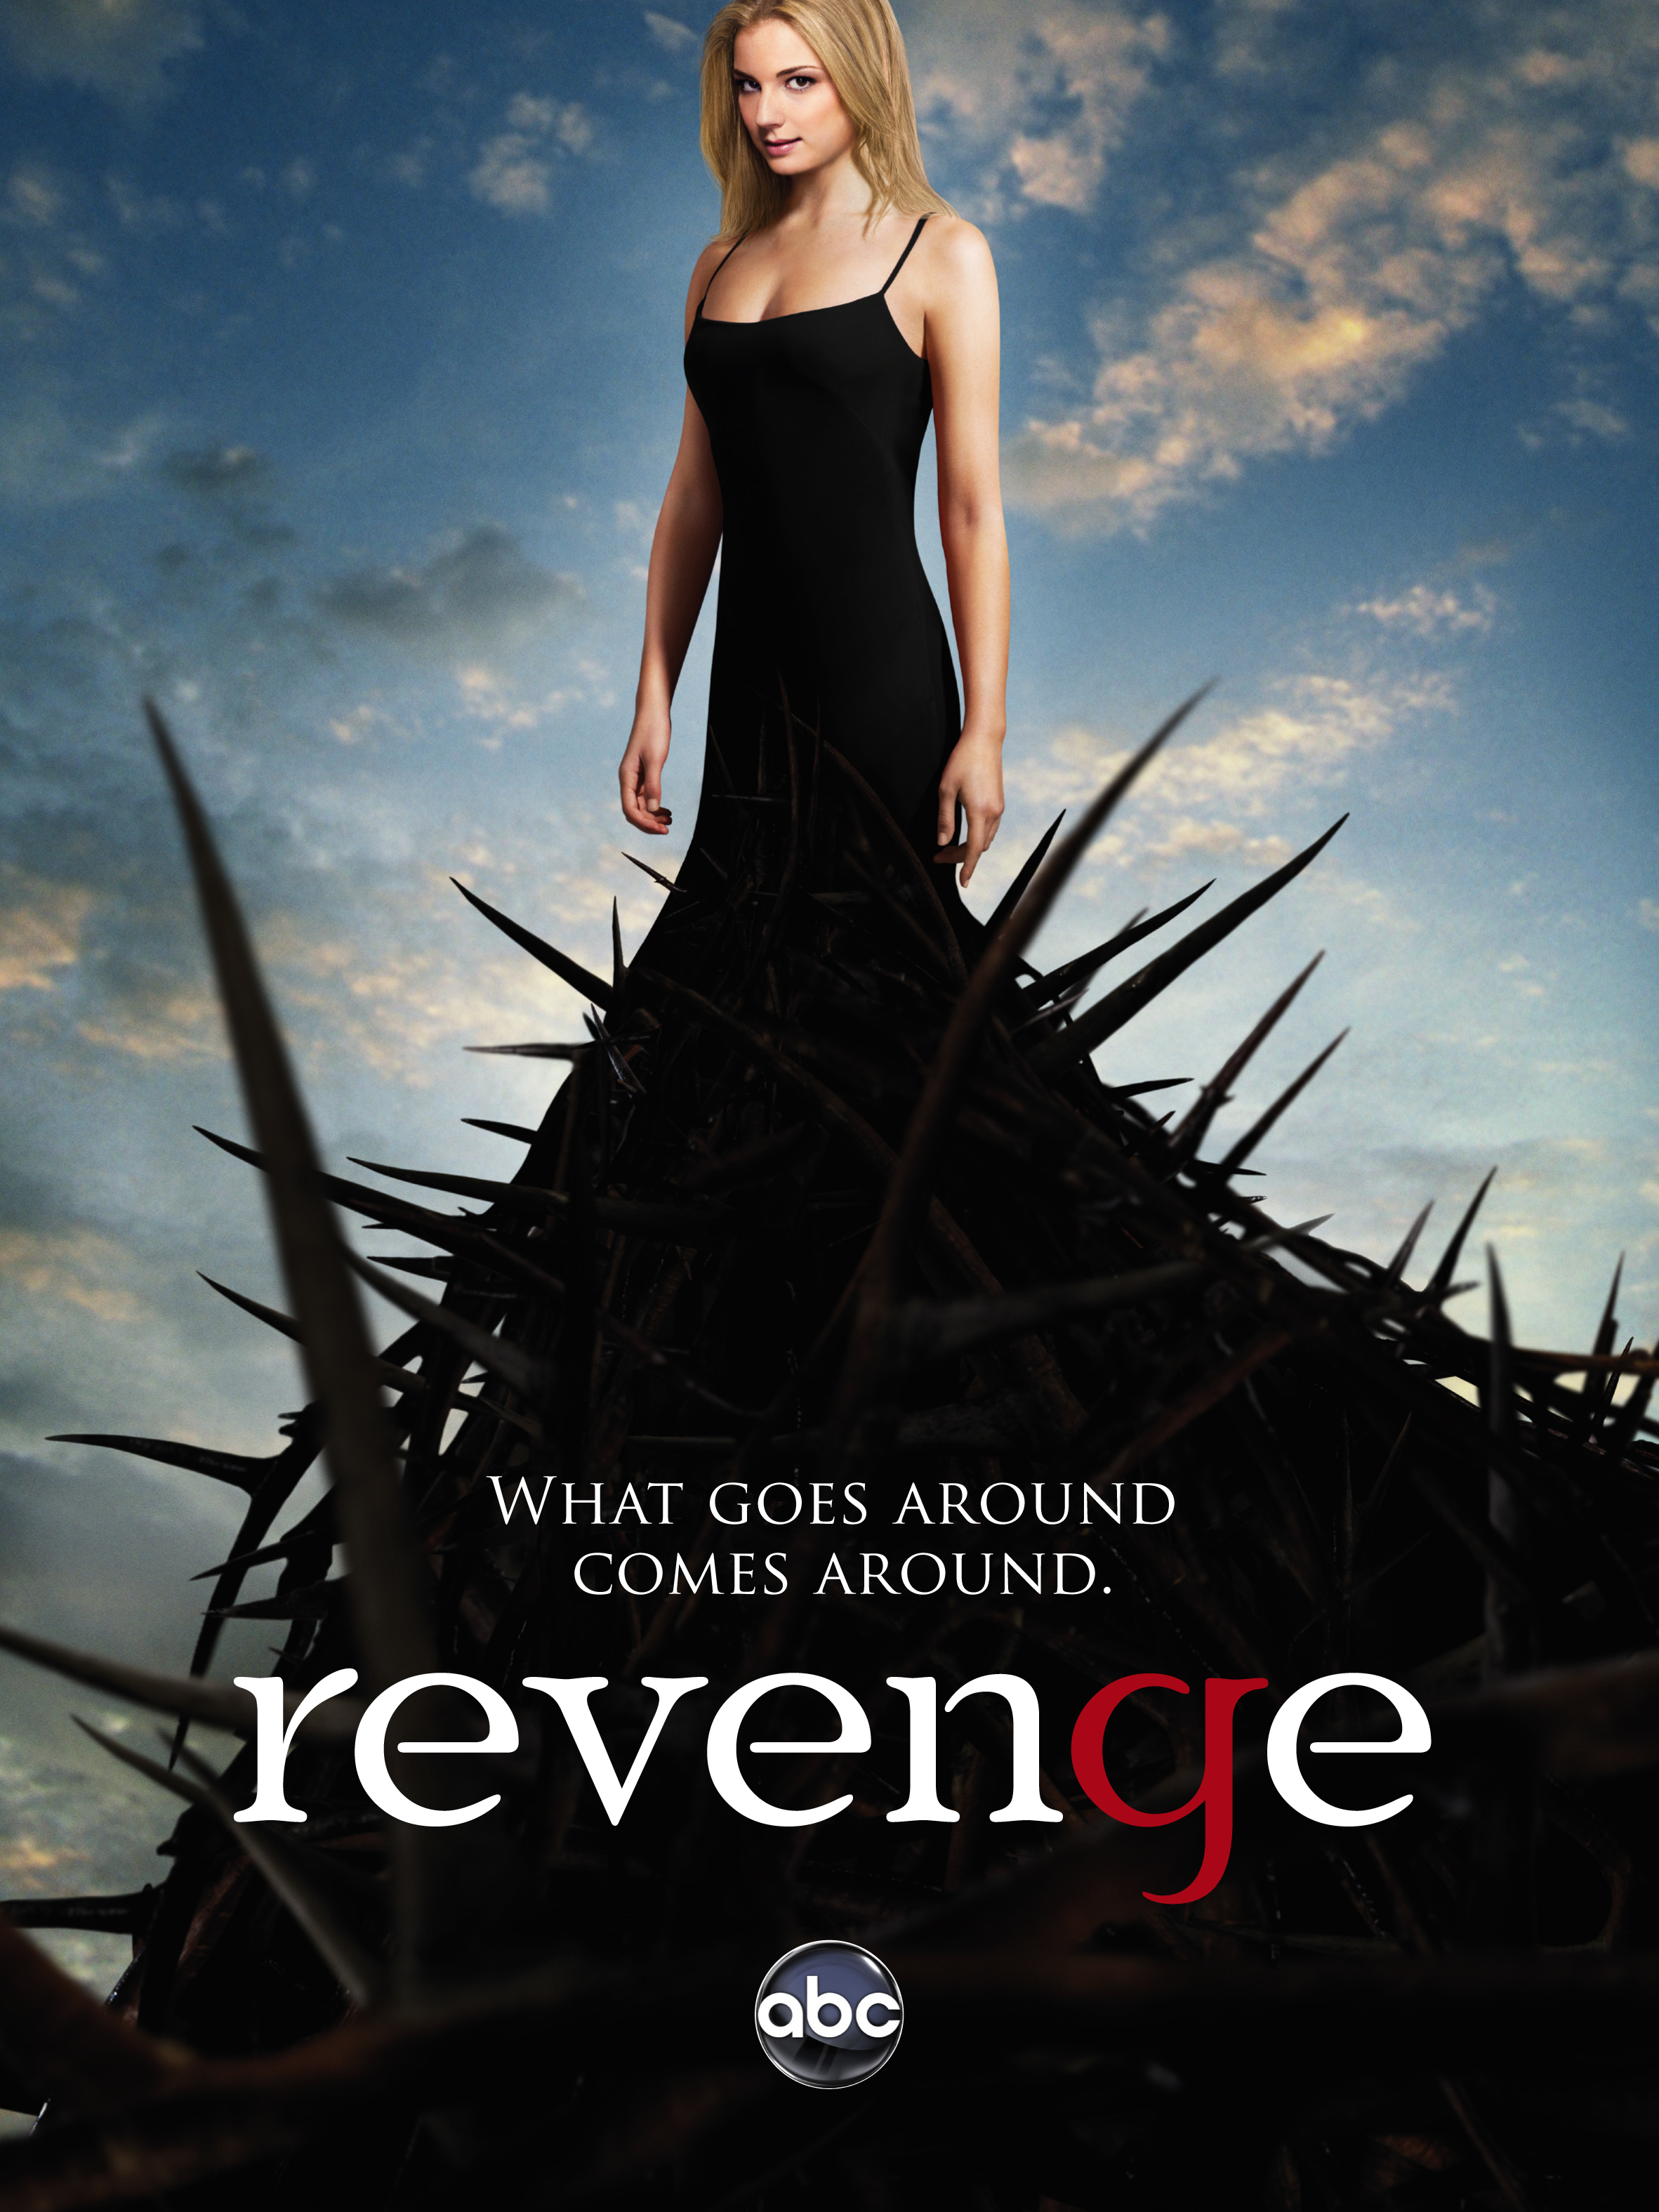 Image result for revenge abc season 1